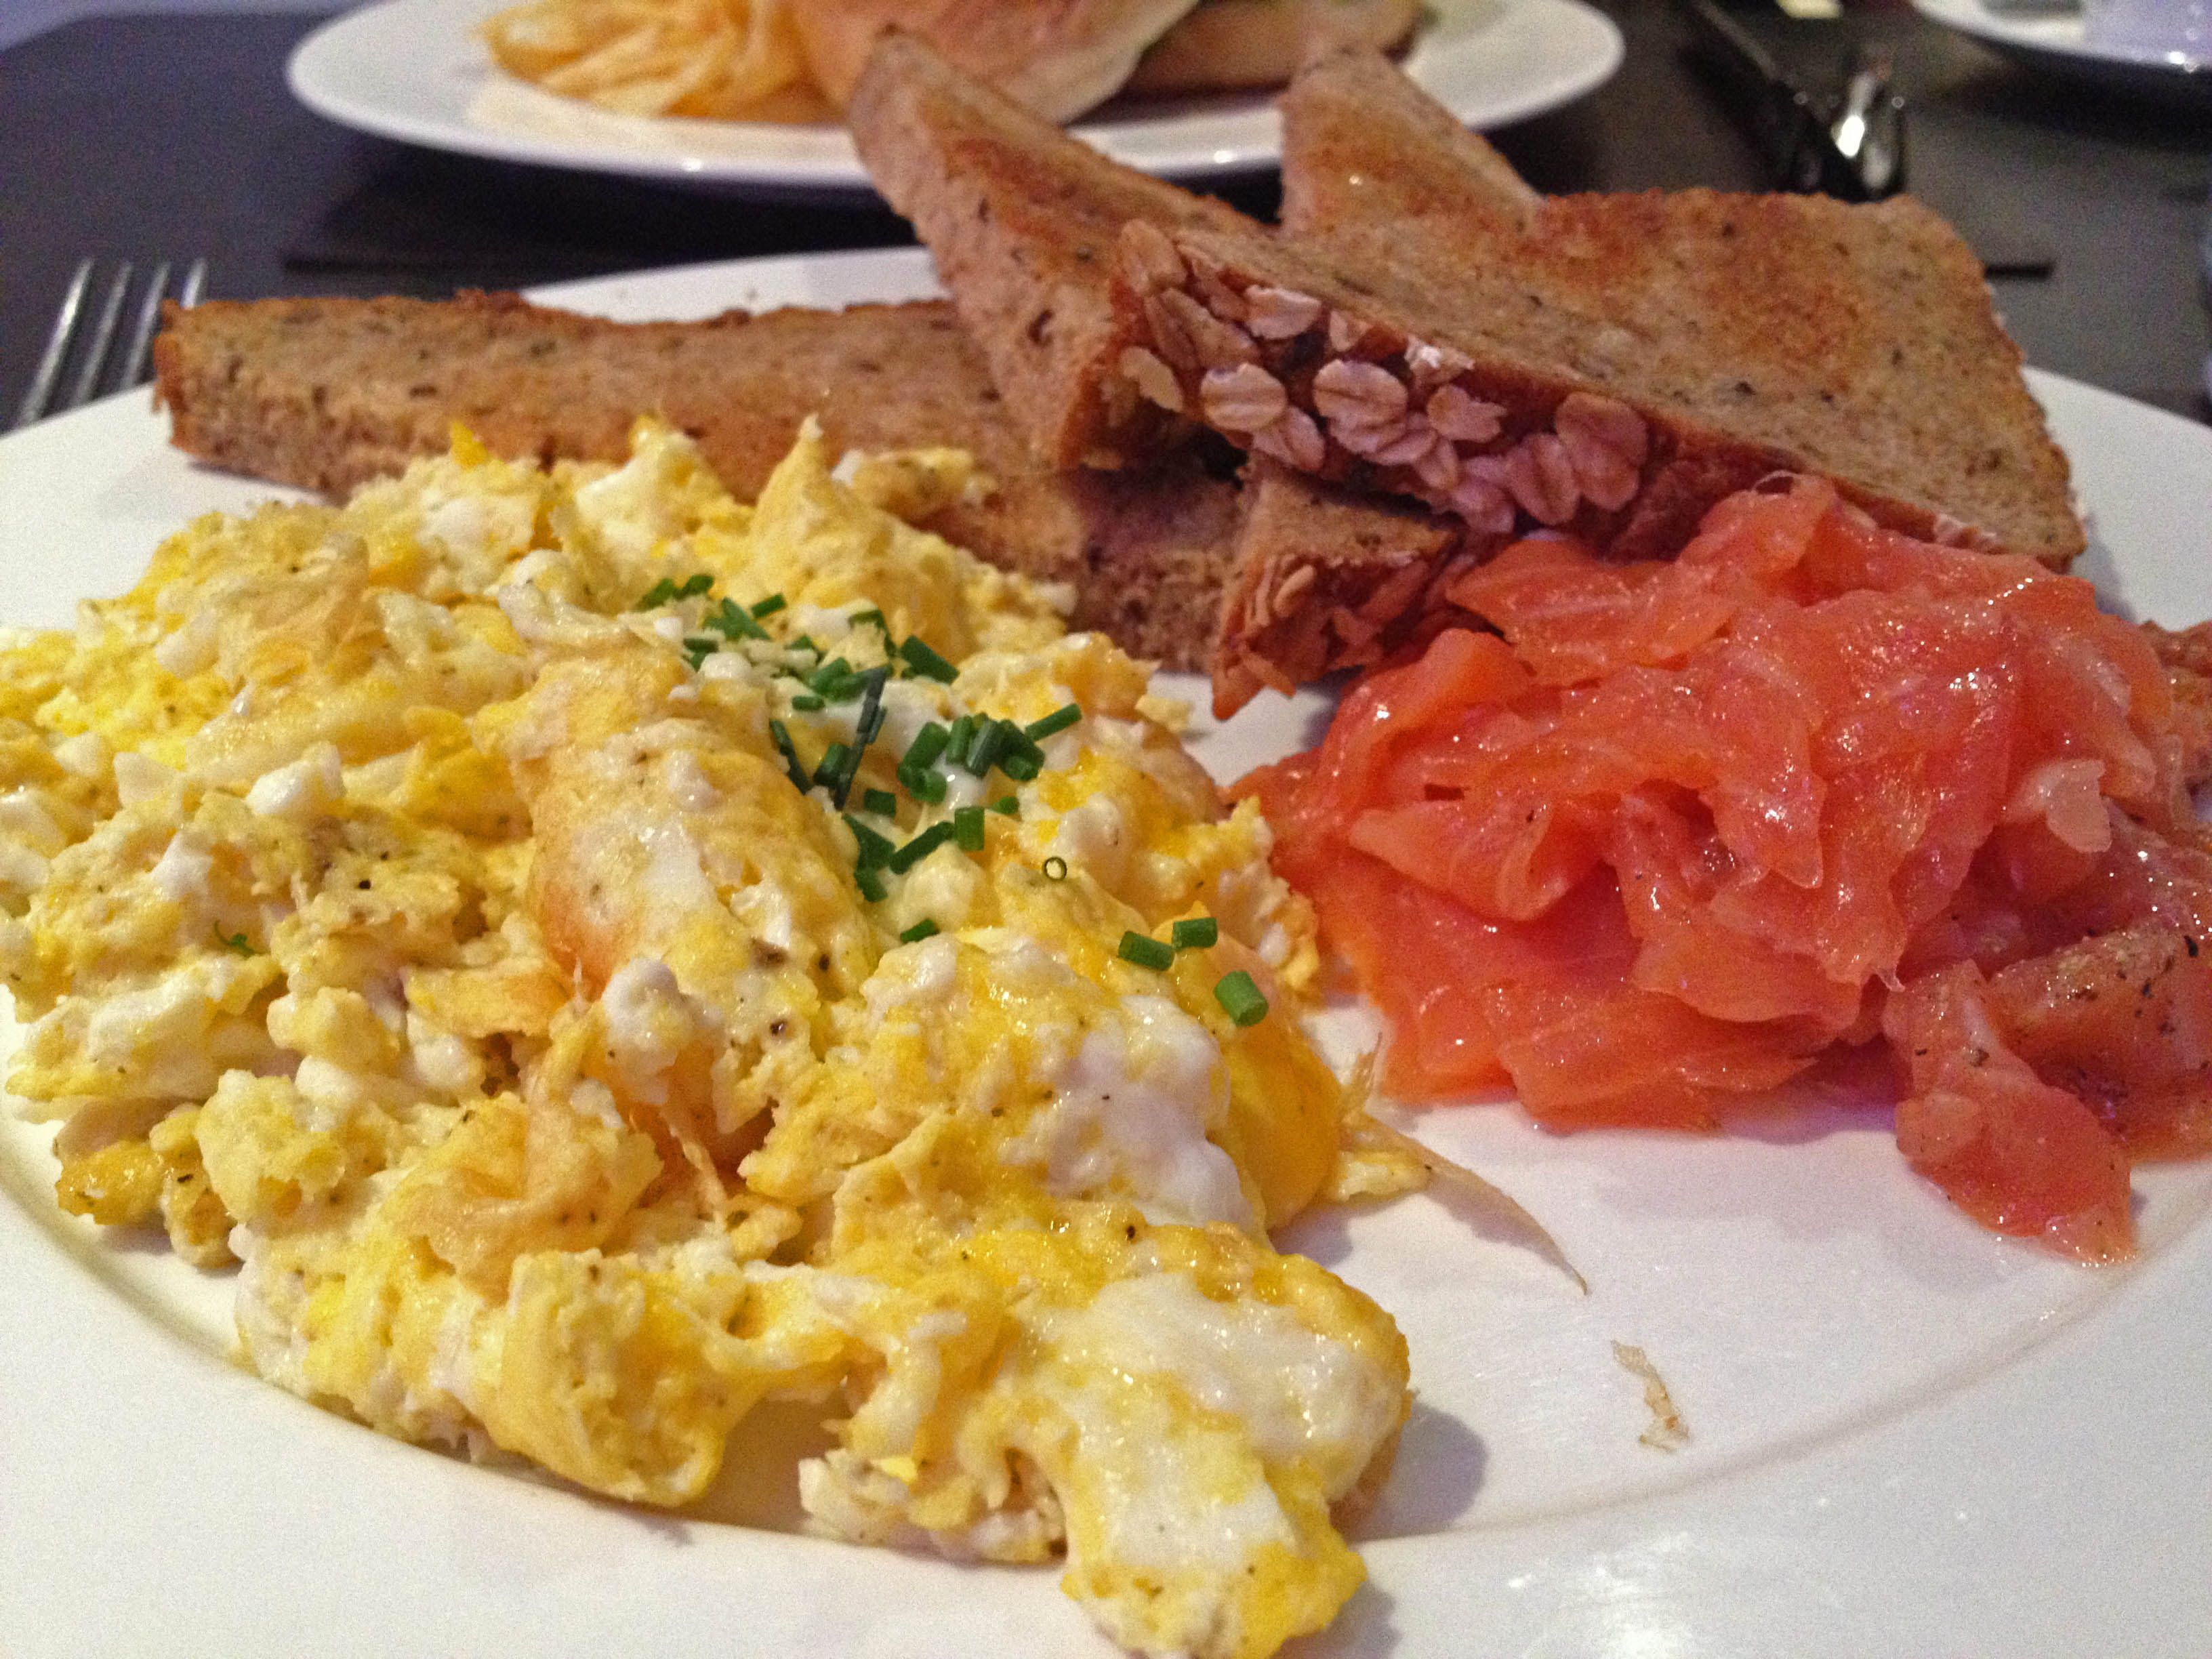 Scrambles Eggs With Smoked Salmon And Whole Wheat Buttered Toast At Acafe In